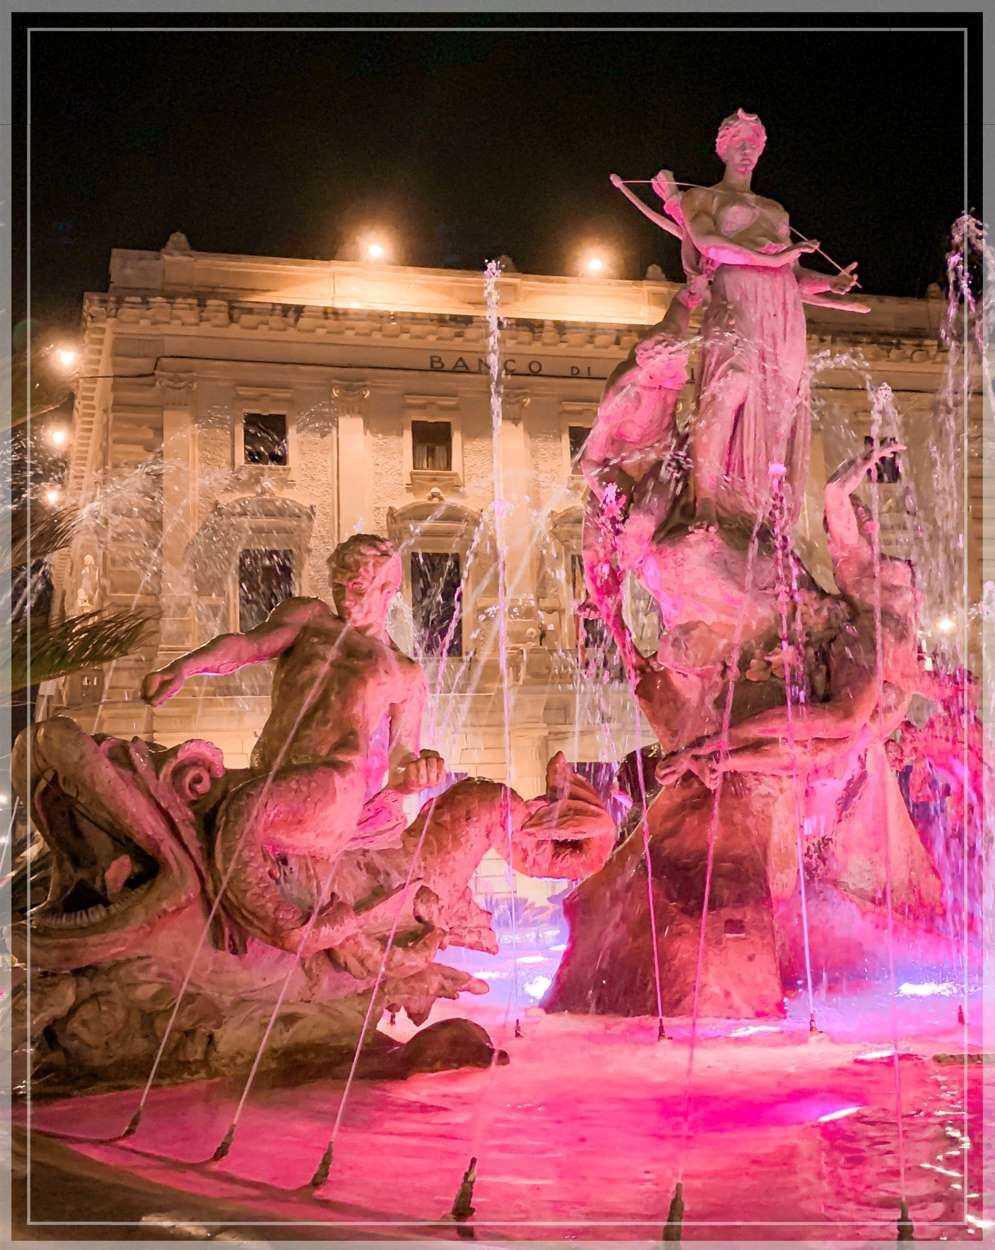 The Fountain of Diana in Ortigia, the historical centre of Syracuse, Sicily